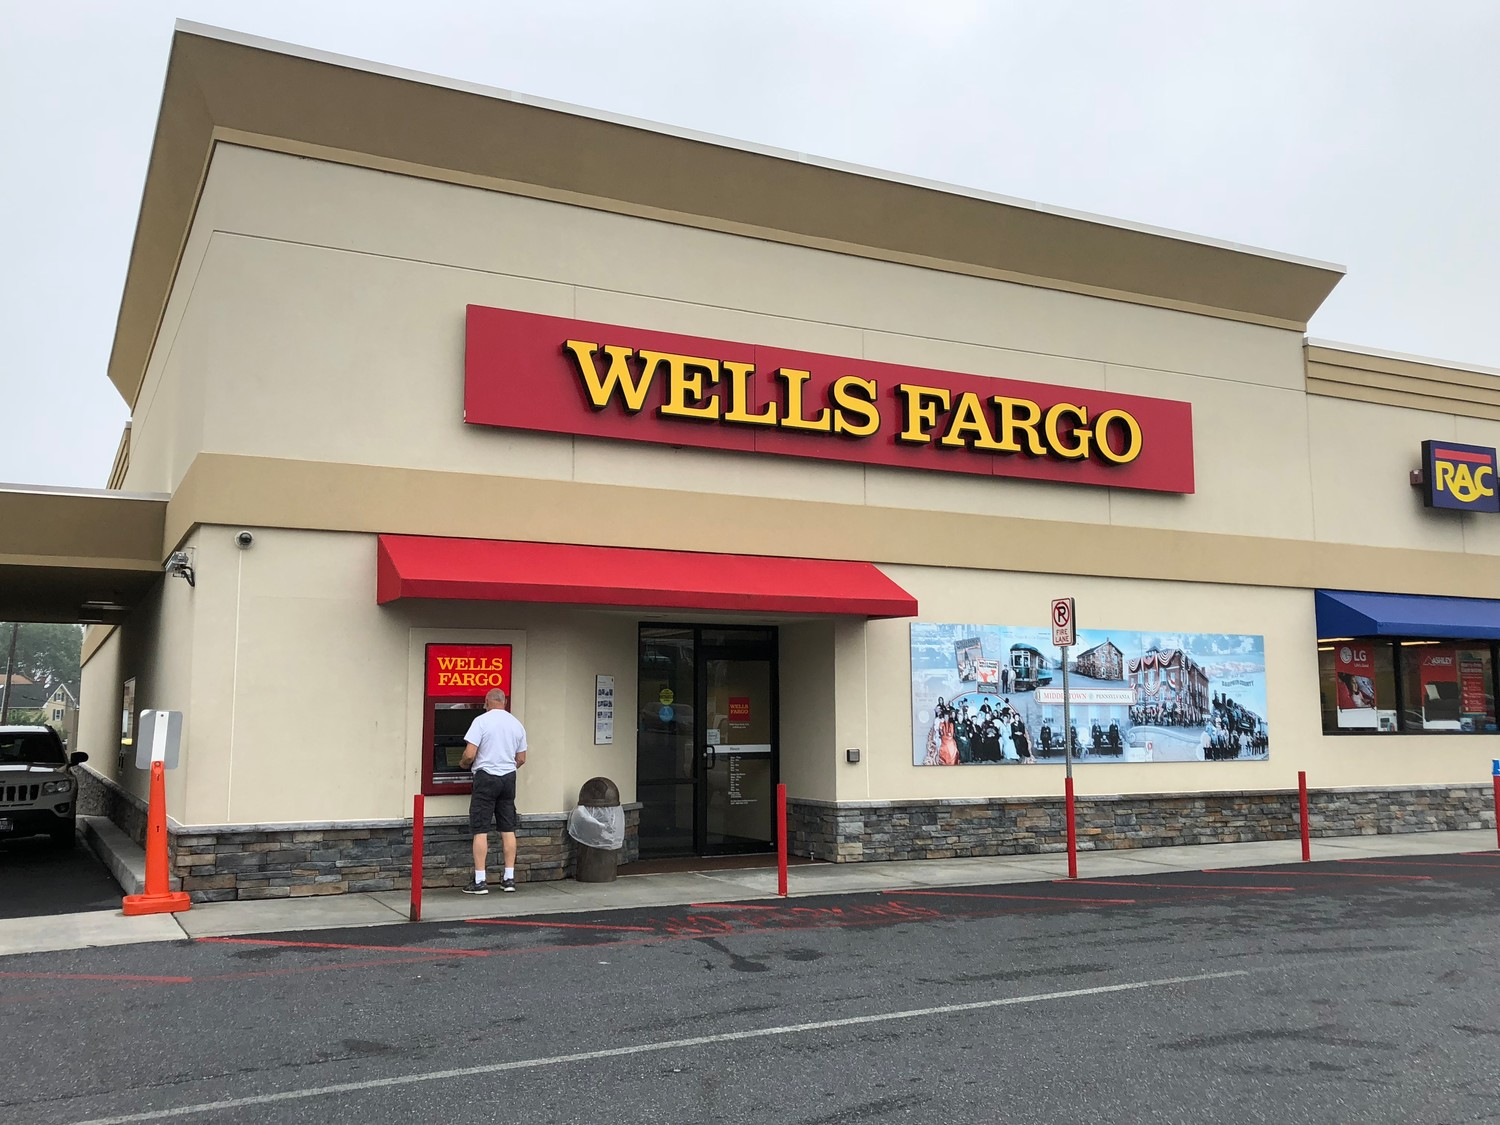 A customer uses the ATM at Wells Fargo on West Main Street on Wednesday morning, a day after an attempted bank robbery there.